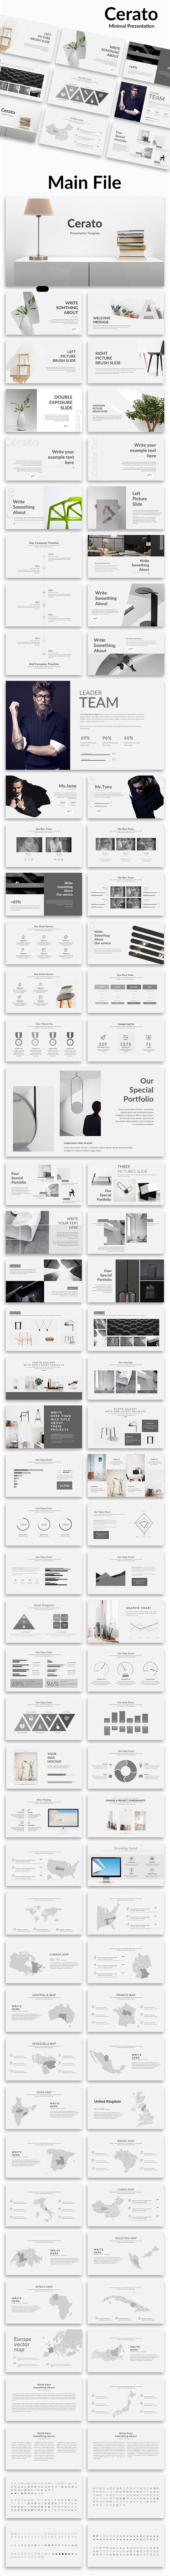 Cerato Minimal Google Slide Template - Google Slides Presentation Templates